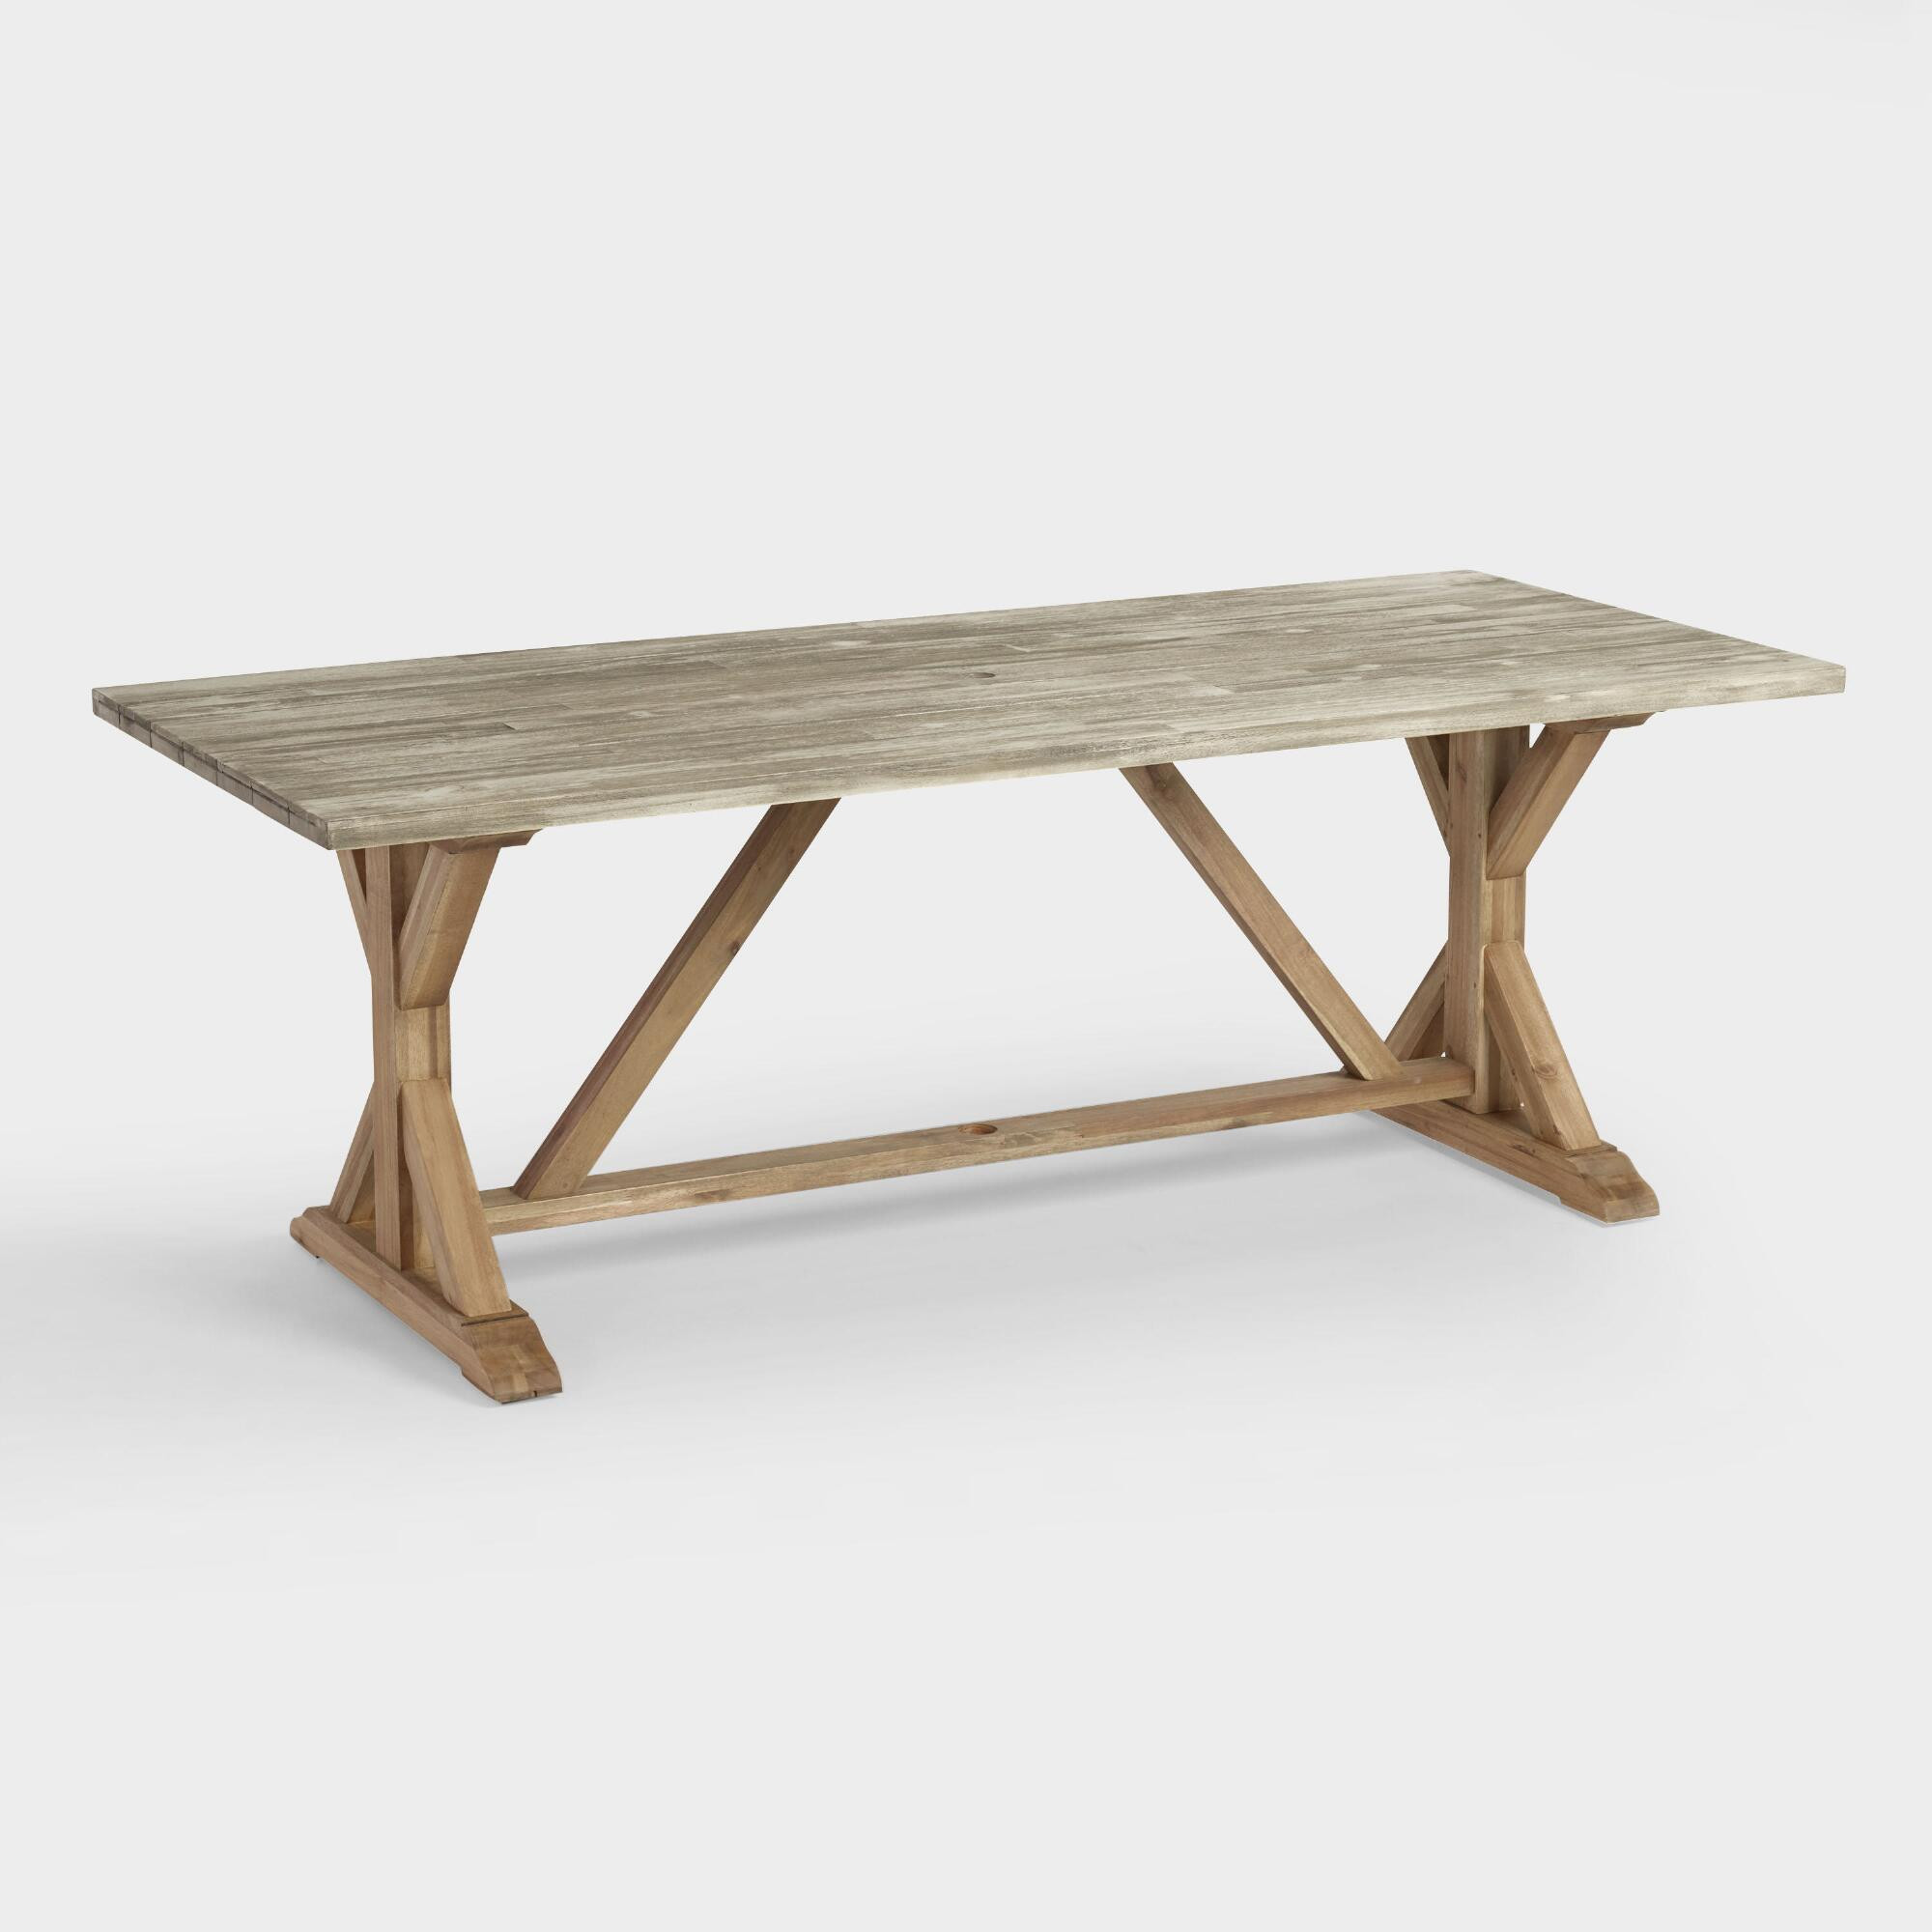 Best ideas about Trestle Dining Table . Save or Pin Two Tone Wood San Remo Trestle Dining Table Now.